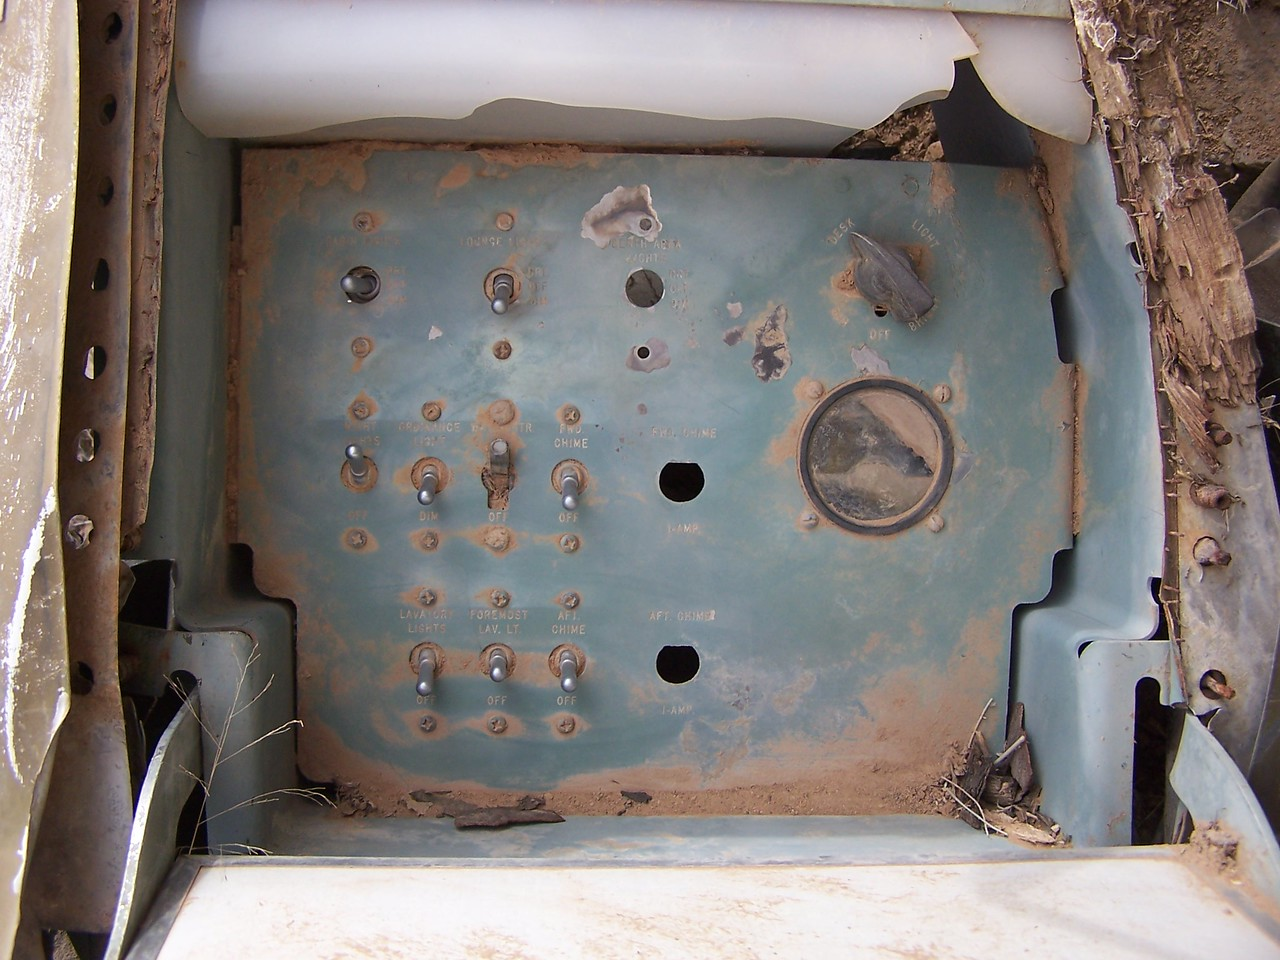 Closeup of the cabin bulkhead switch panel. Contains the flight attendant's (Hostess) aircraft cabin switches and controls for lighting, audible chimes, and cabin announcements. <br /> <br /> This bulkhead was located to the right of the main cabin entrance door.